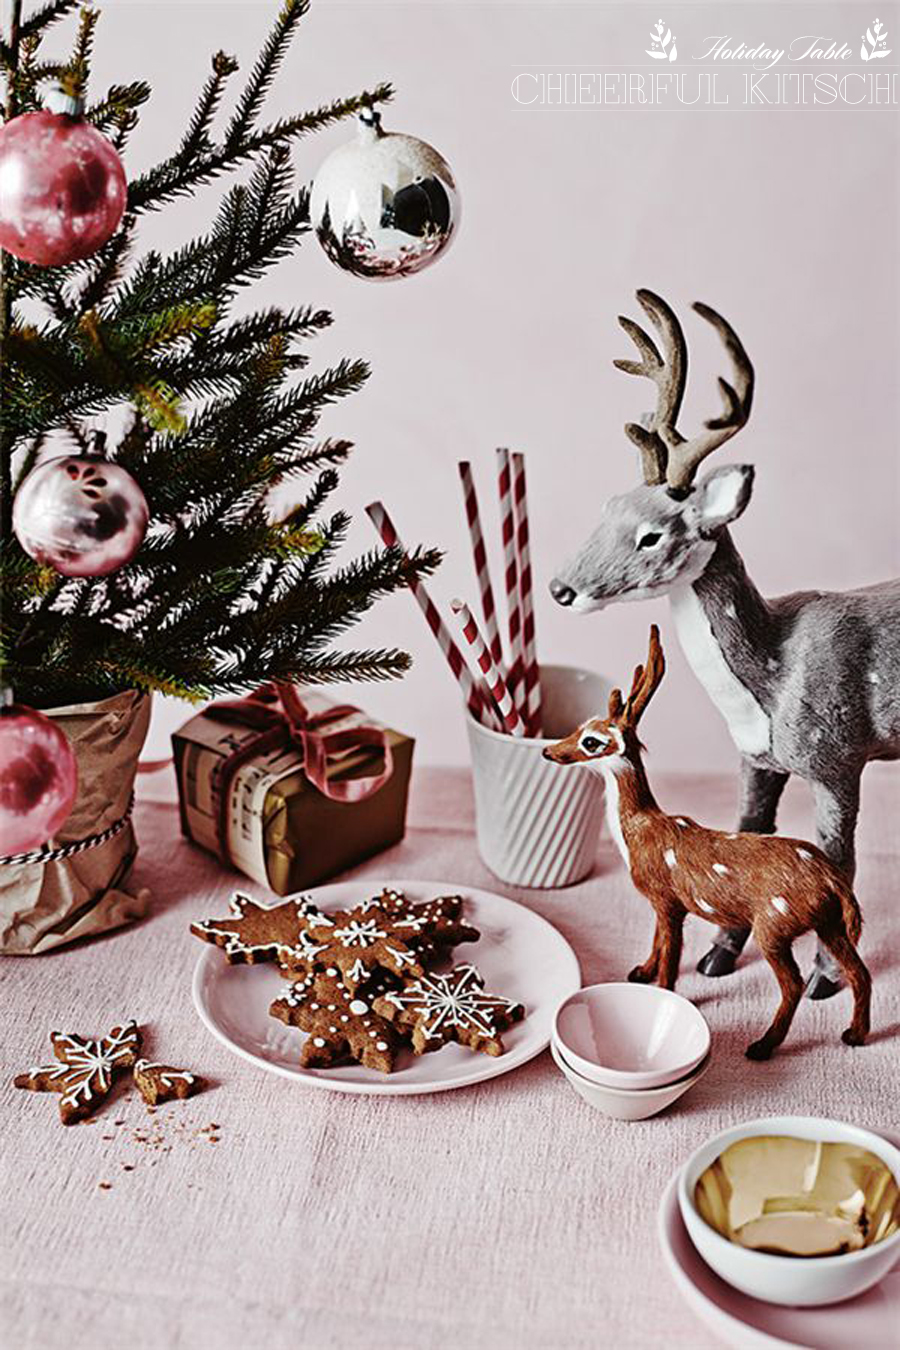 Modern Holiday Table | Cheerful Kitsch | Dine X Design